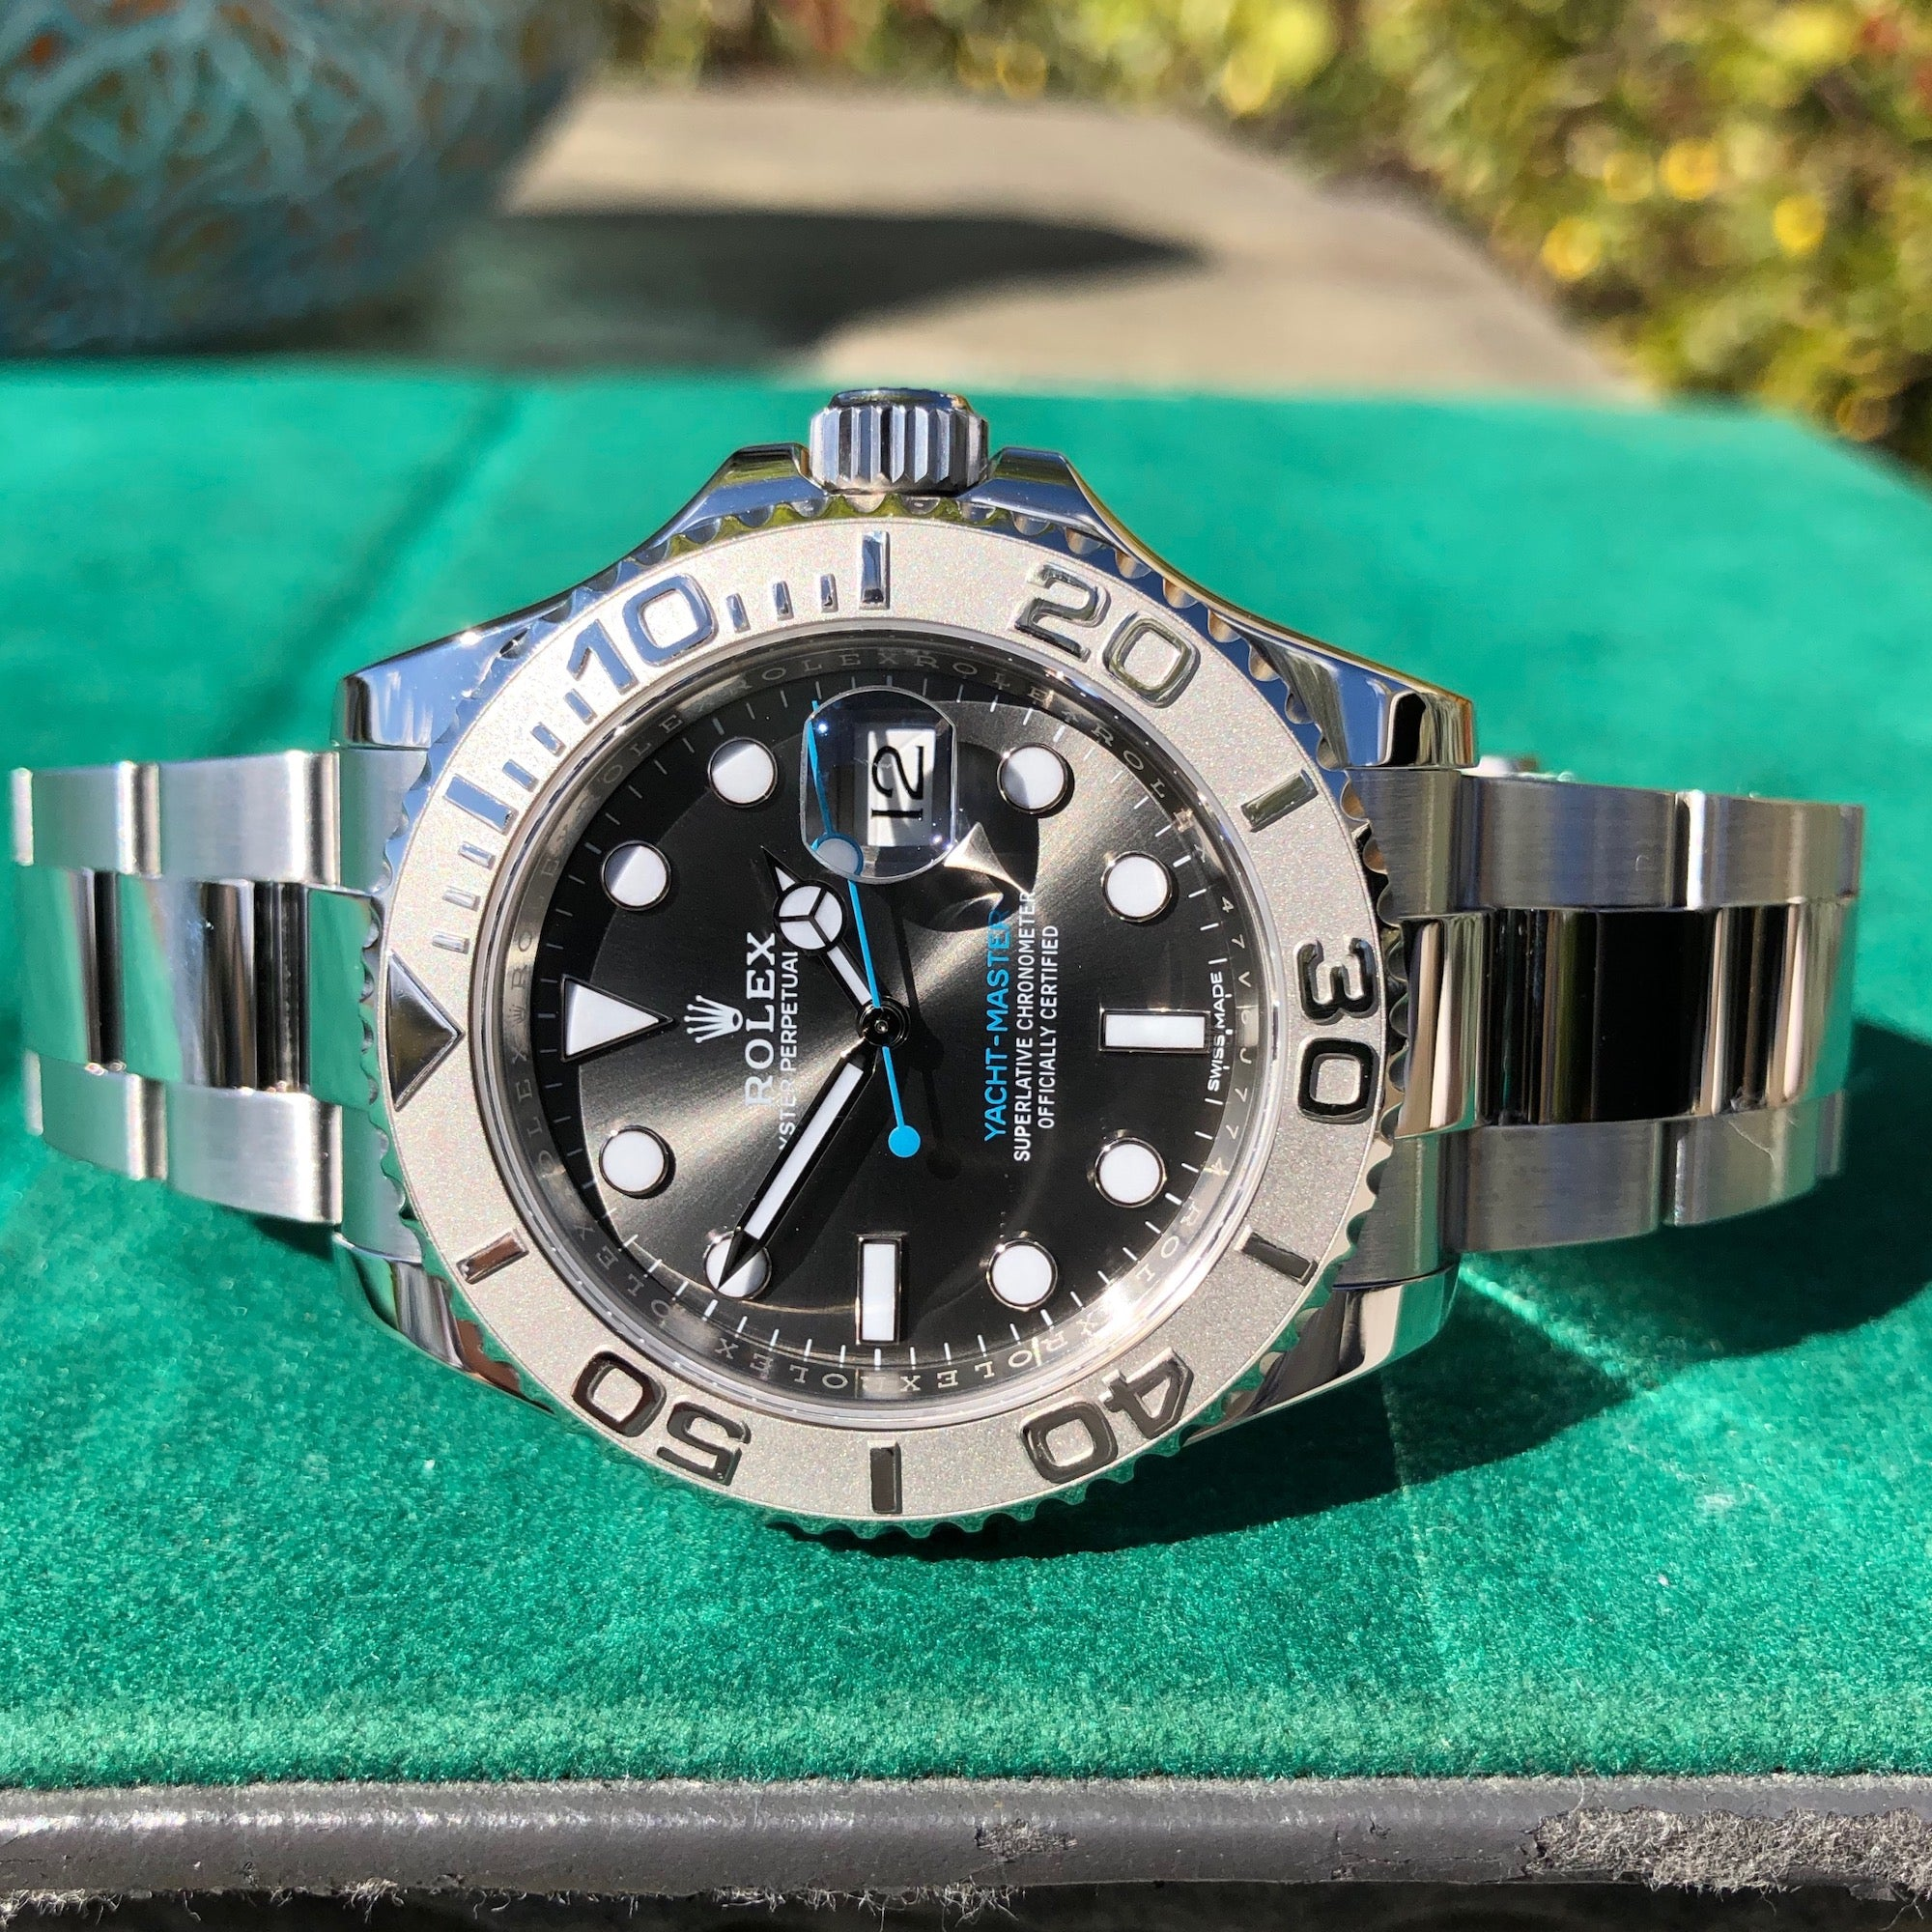 Rolex Yachtmaster 116622 Rhodium Platinum 40mm Steel Oyster Wristwatch Box & Papers - Hashtag Watch Company